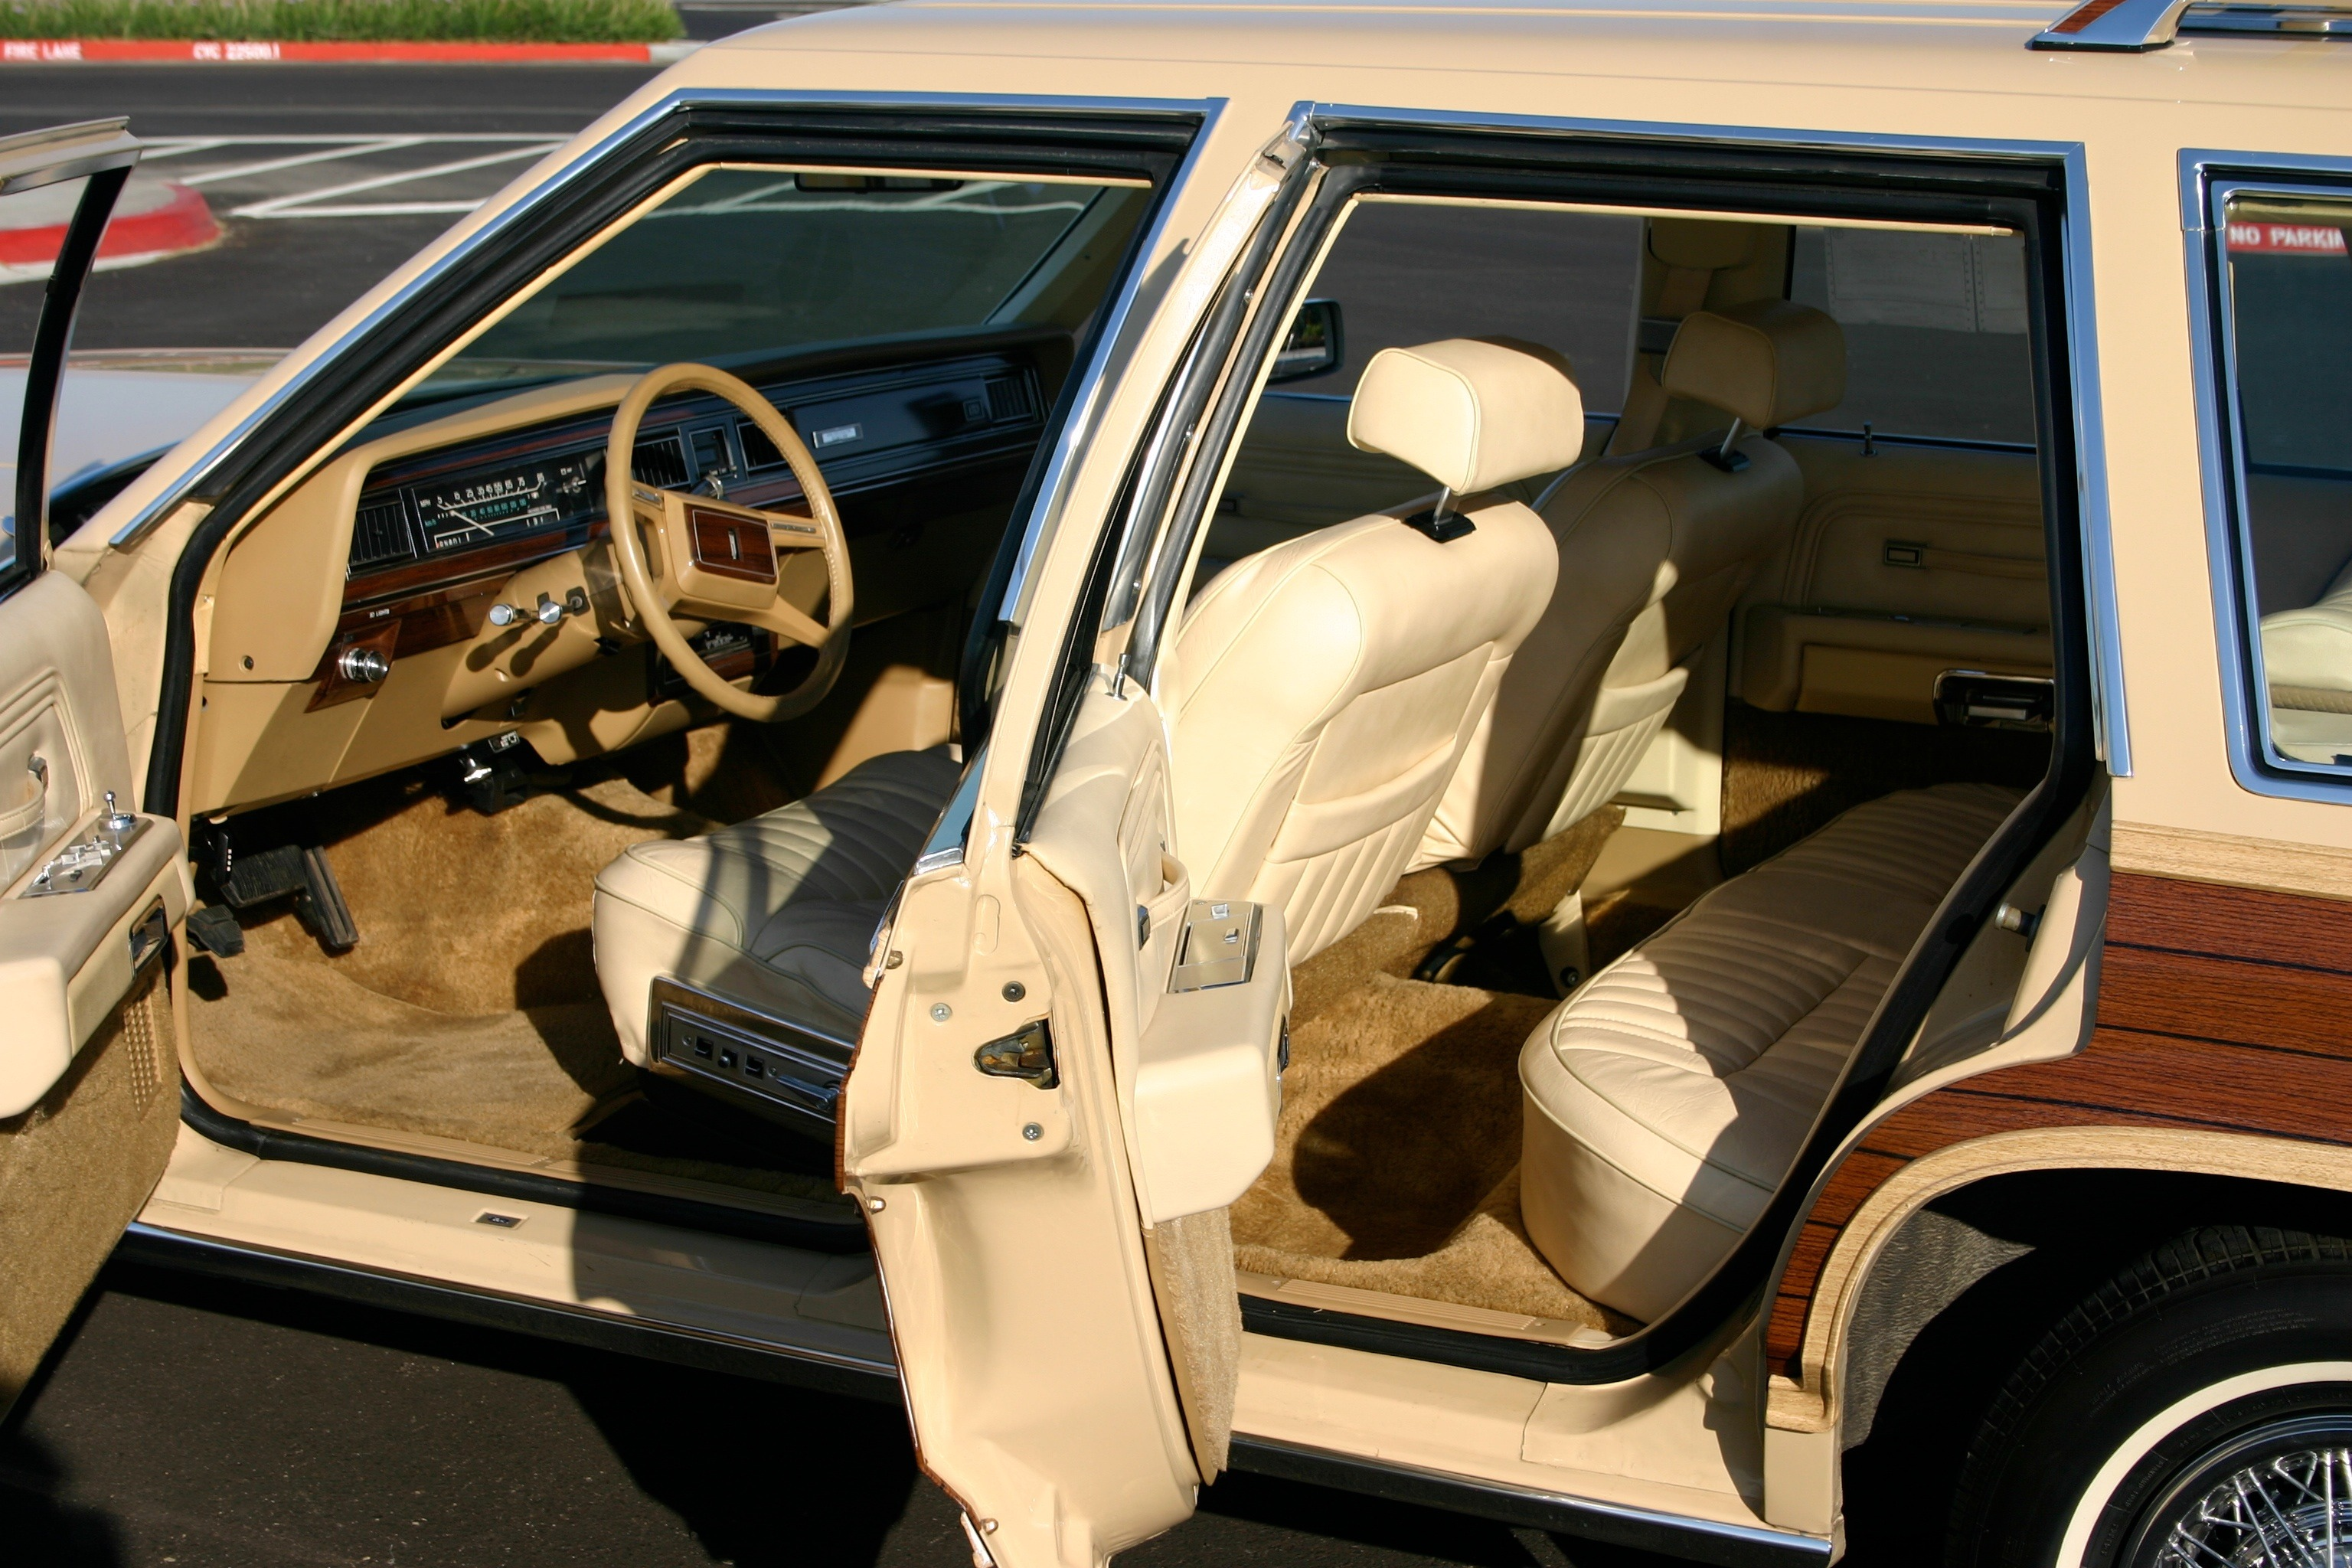 File:1982 country squire full interior.jpg - Wikimedia Commons